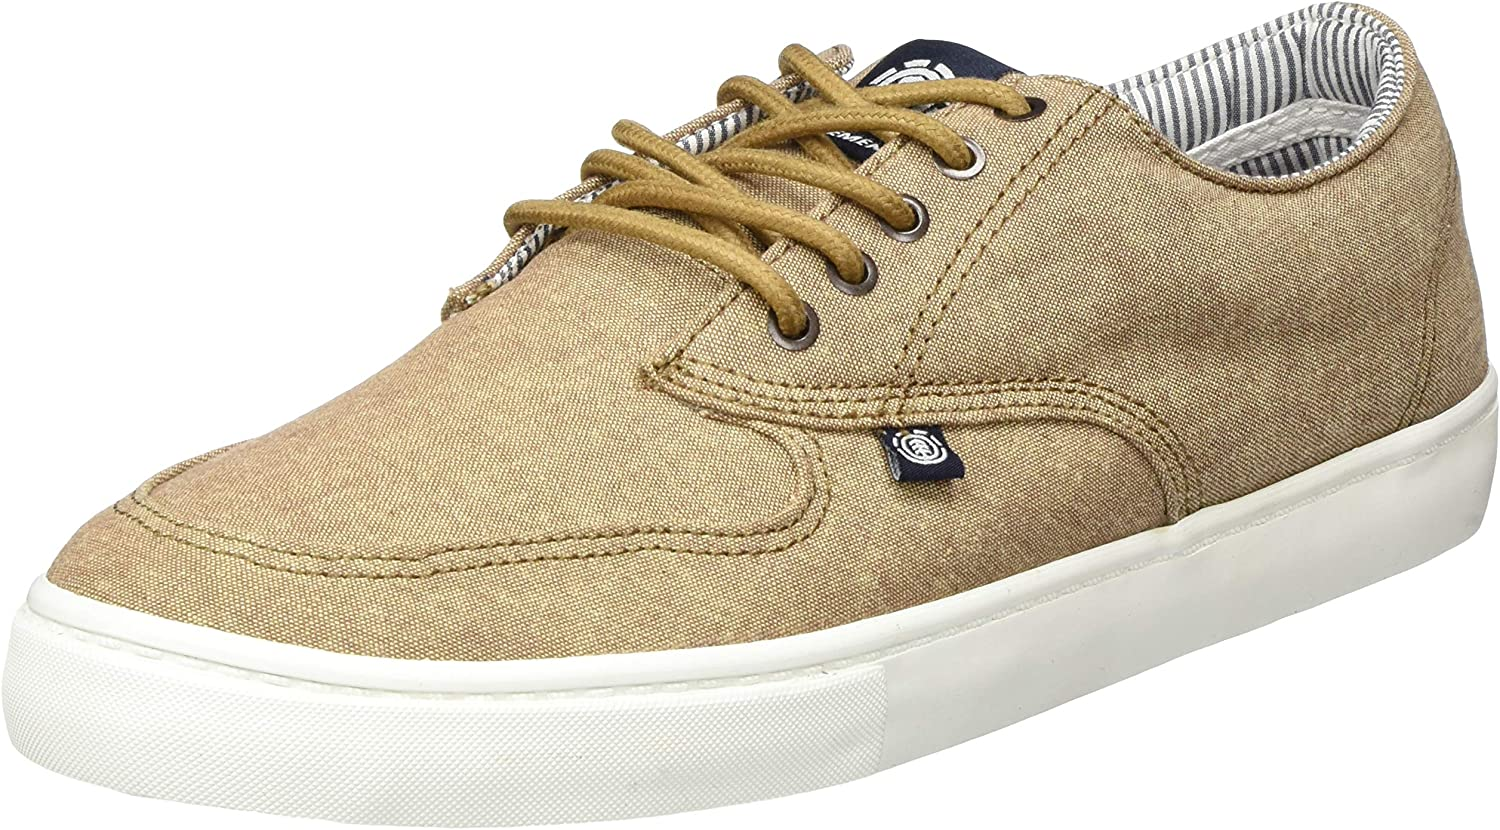 Element Men's Trainers Low-Top New Orleans Mall Challenge the lowest price of Japan ☆